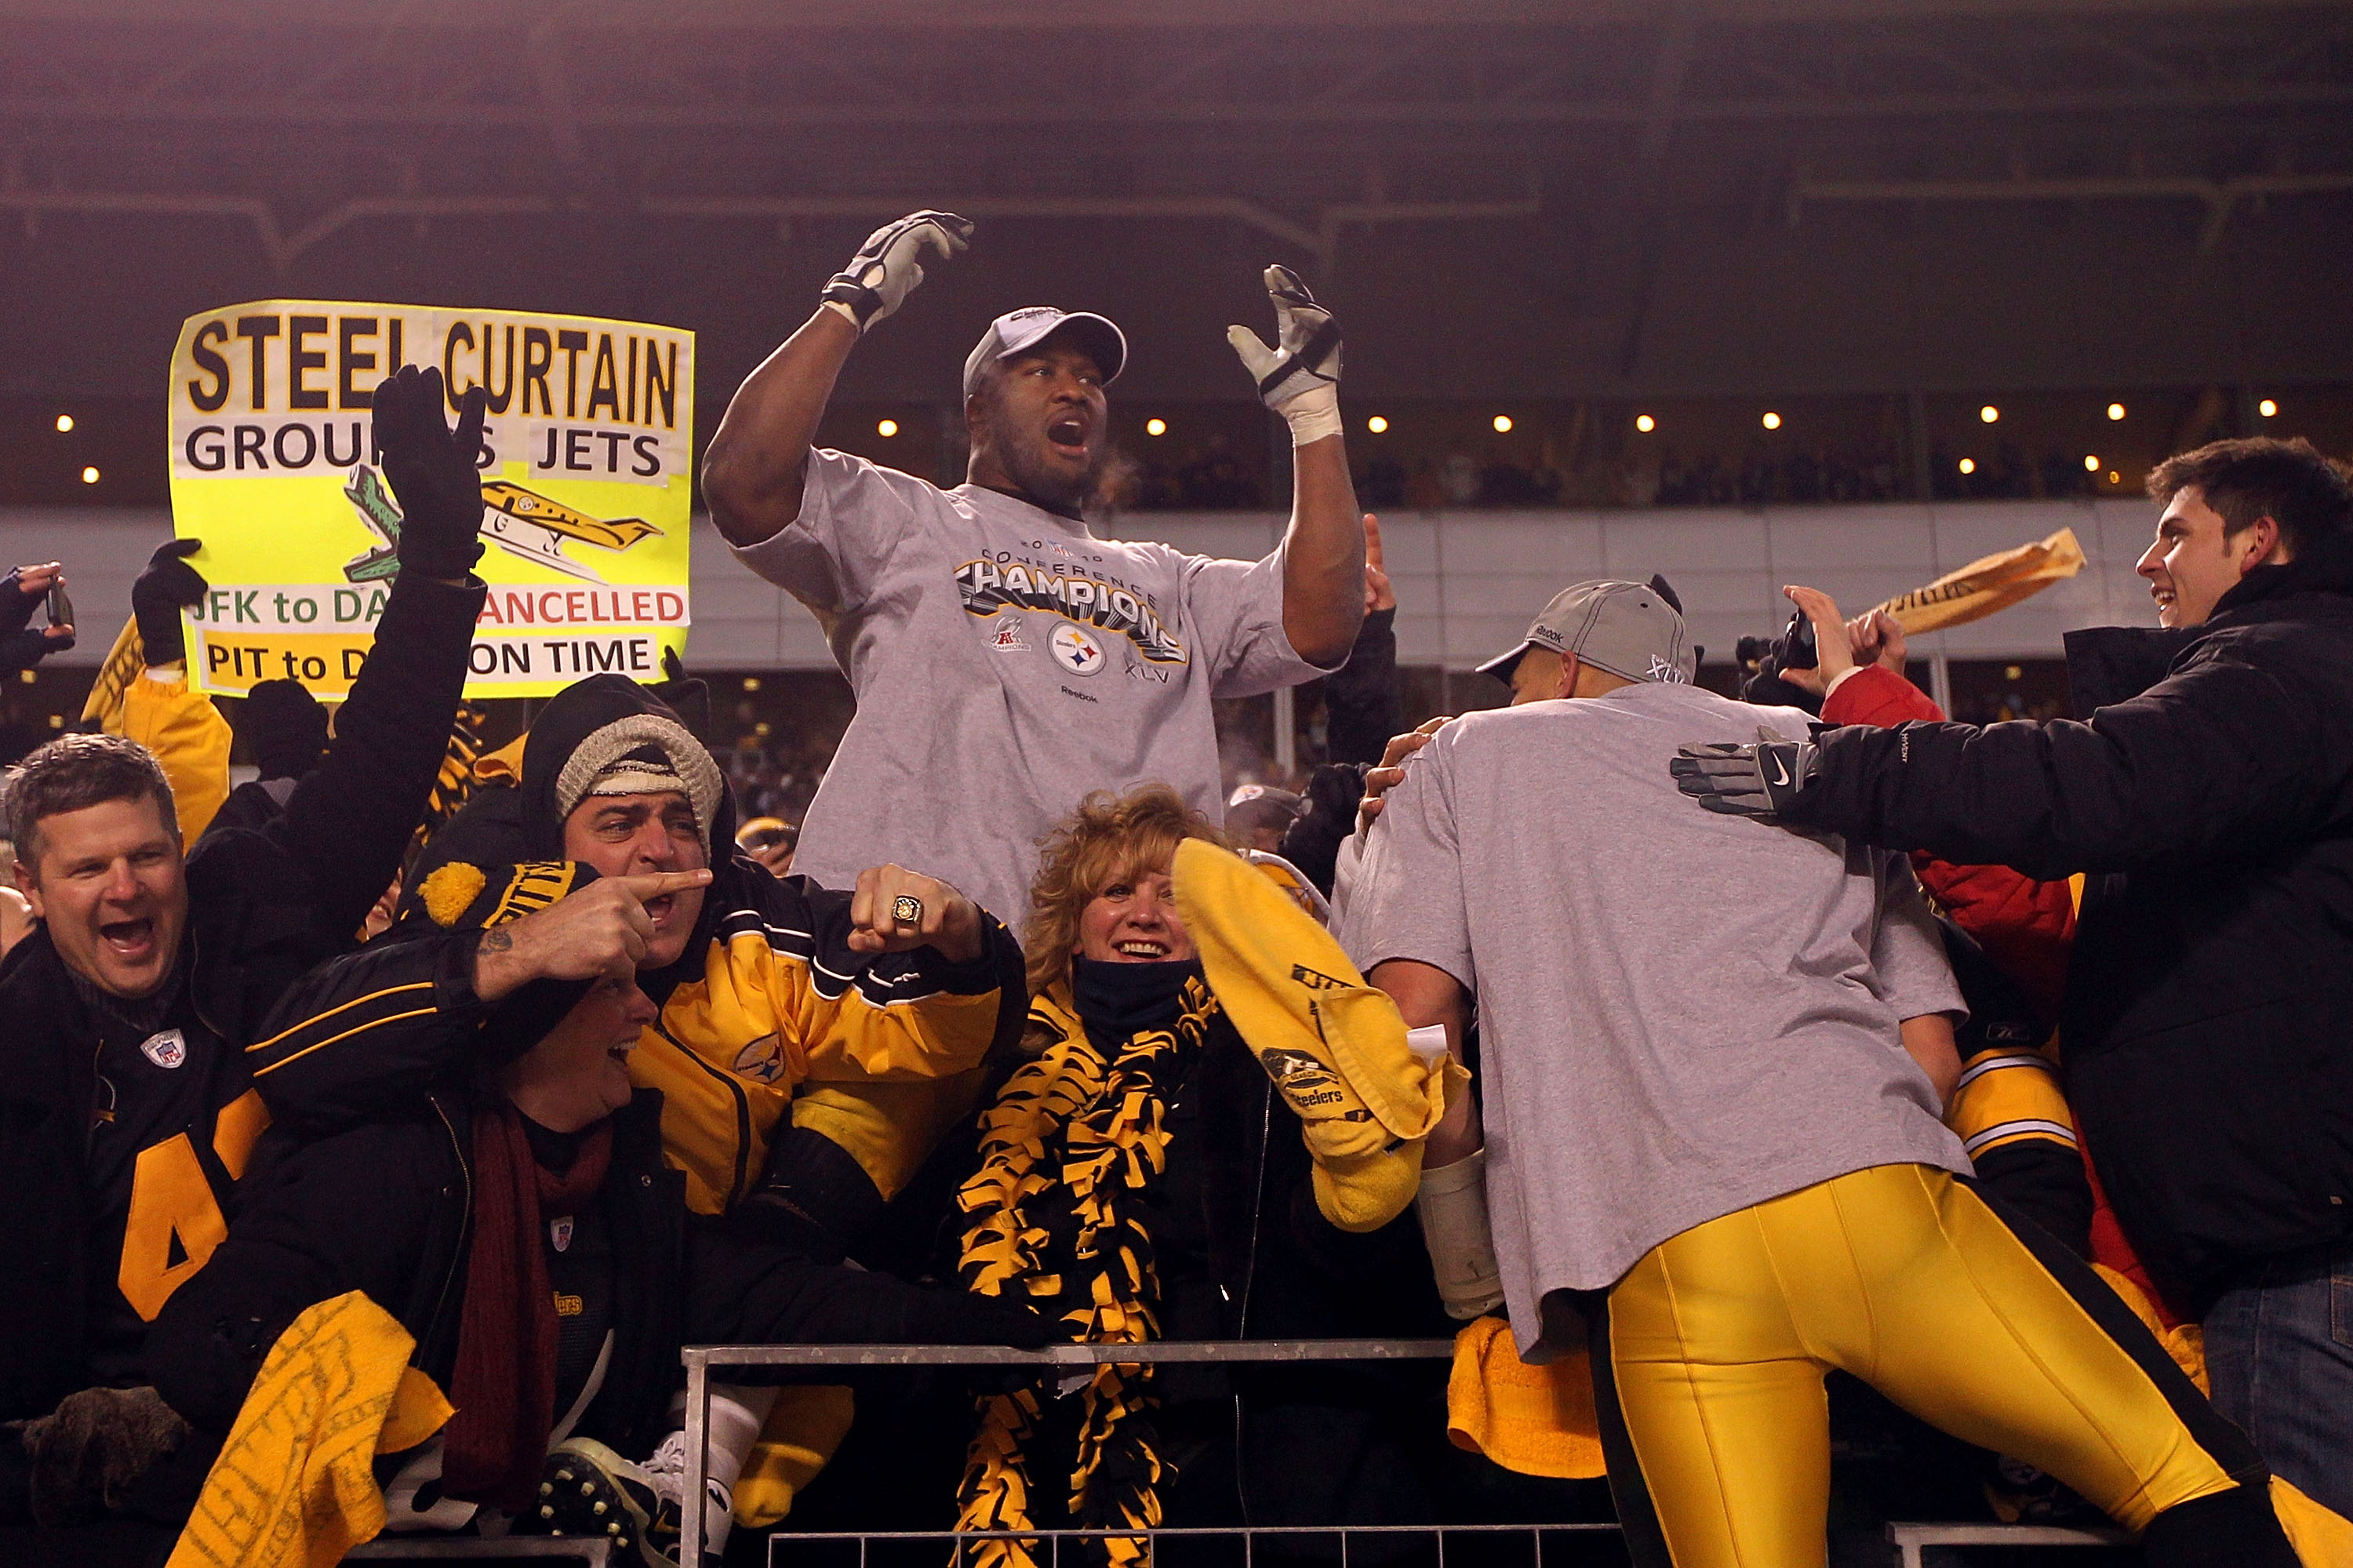 PITTSBURGH, PA - JANUARY 23:  James Harrison #92 of the Pittsburgh Steelers celebrates with fans in the stands after they defeated the New York Jets 24 to 19 in the 2011 AFC Championship game at Heinz Field on January 23, 2011 in Pittsburgh, Pennsylvania.